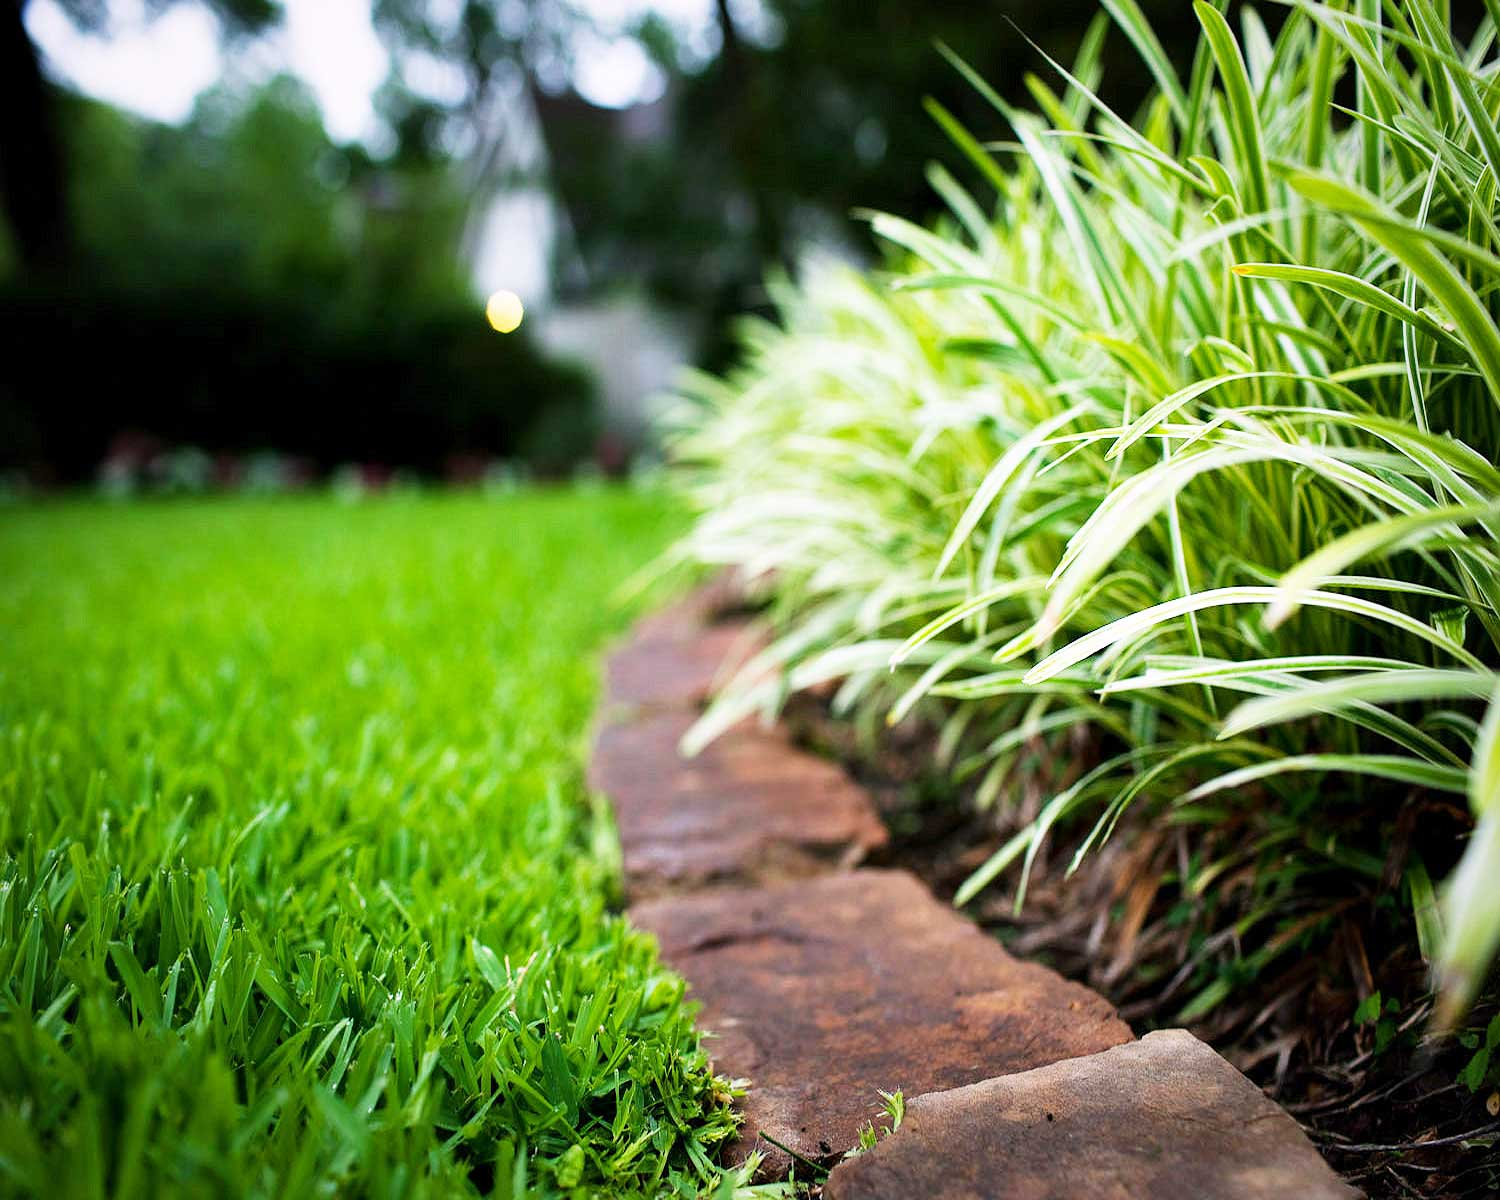 Lawn care landscaping services merry moppins cleaning for Lawn and garden services